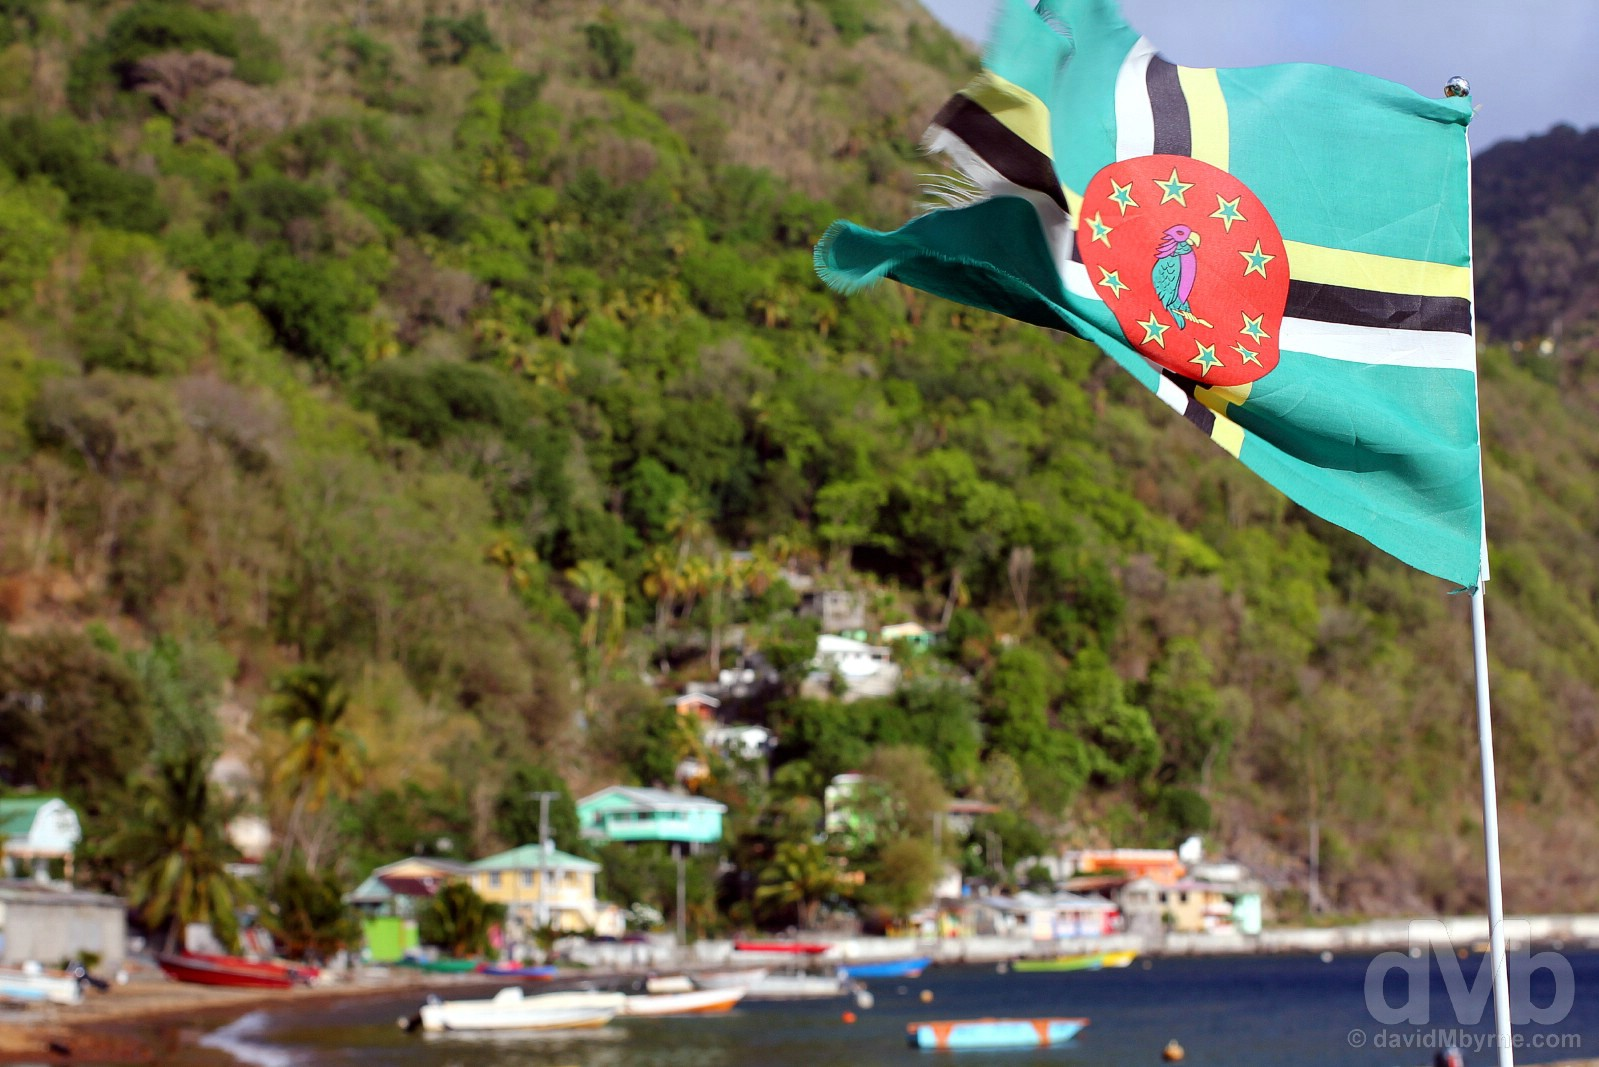 Bubble Beach, Soufriere, southern Dominica. June 11, 2015.